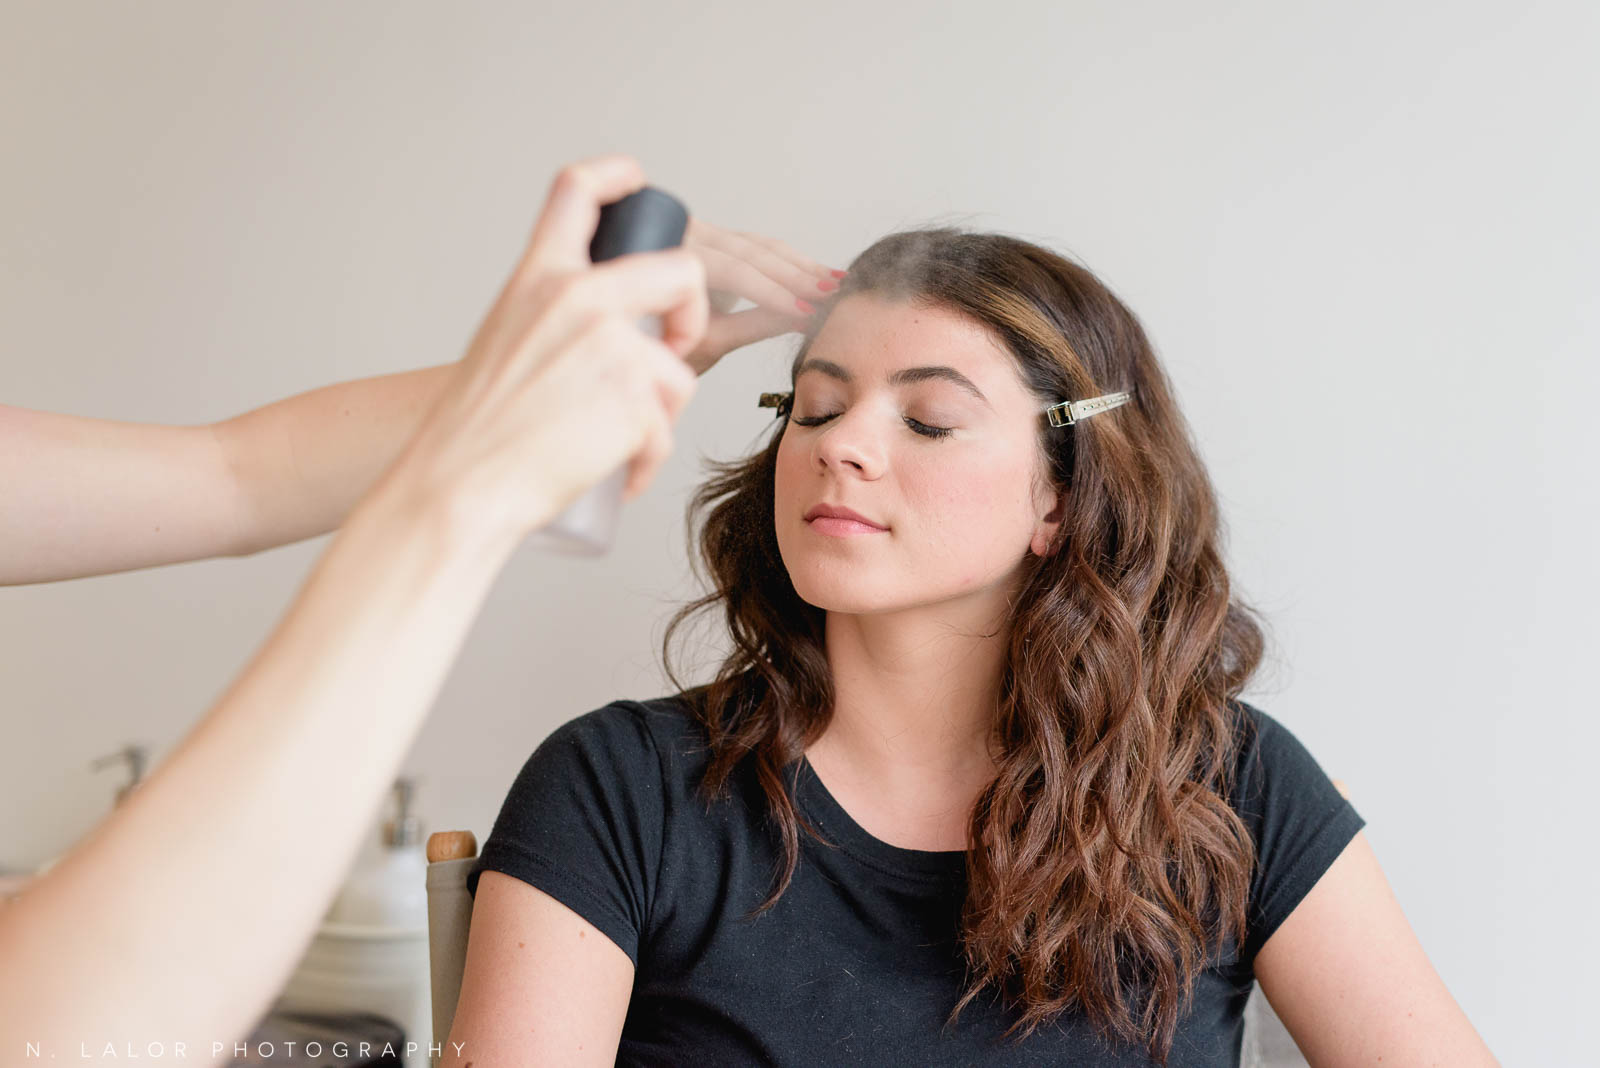 Finishing spray, at the end of putting on makeup for a photo session. Photo by N. Lalor Photography, makeup tips by Haus of Pretty of Westport CT.